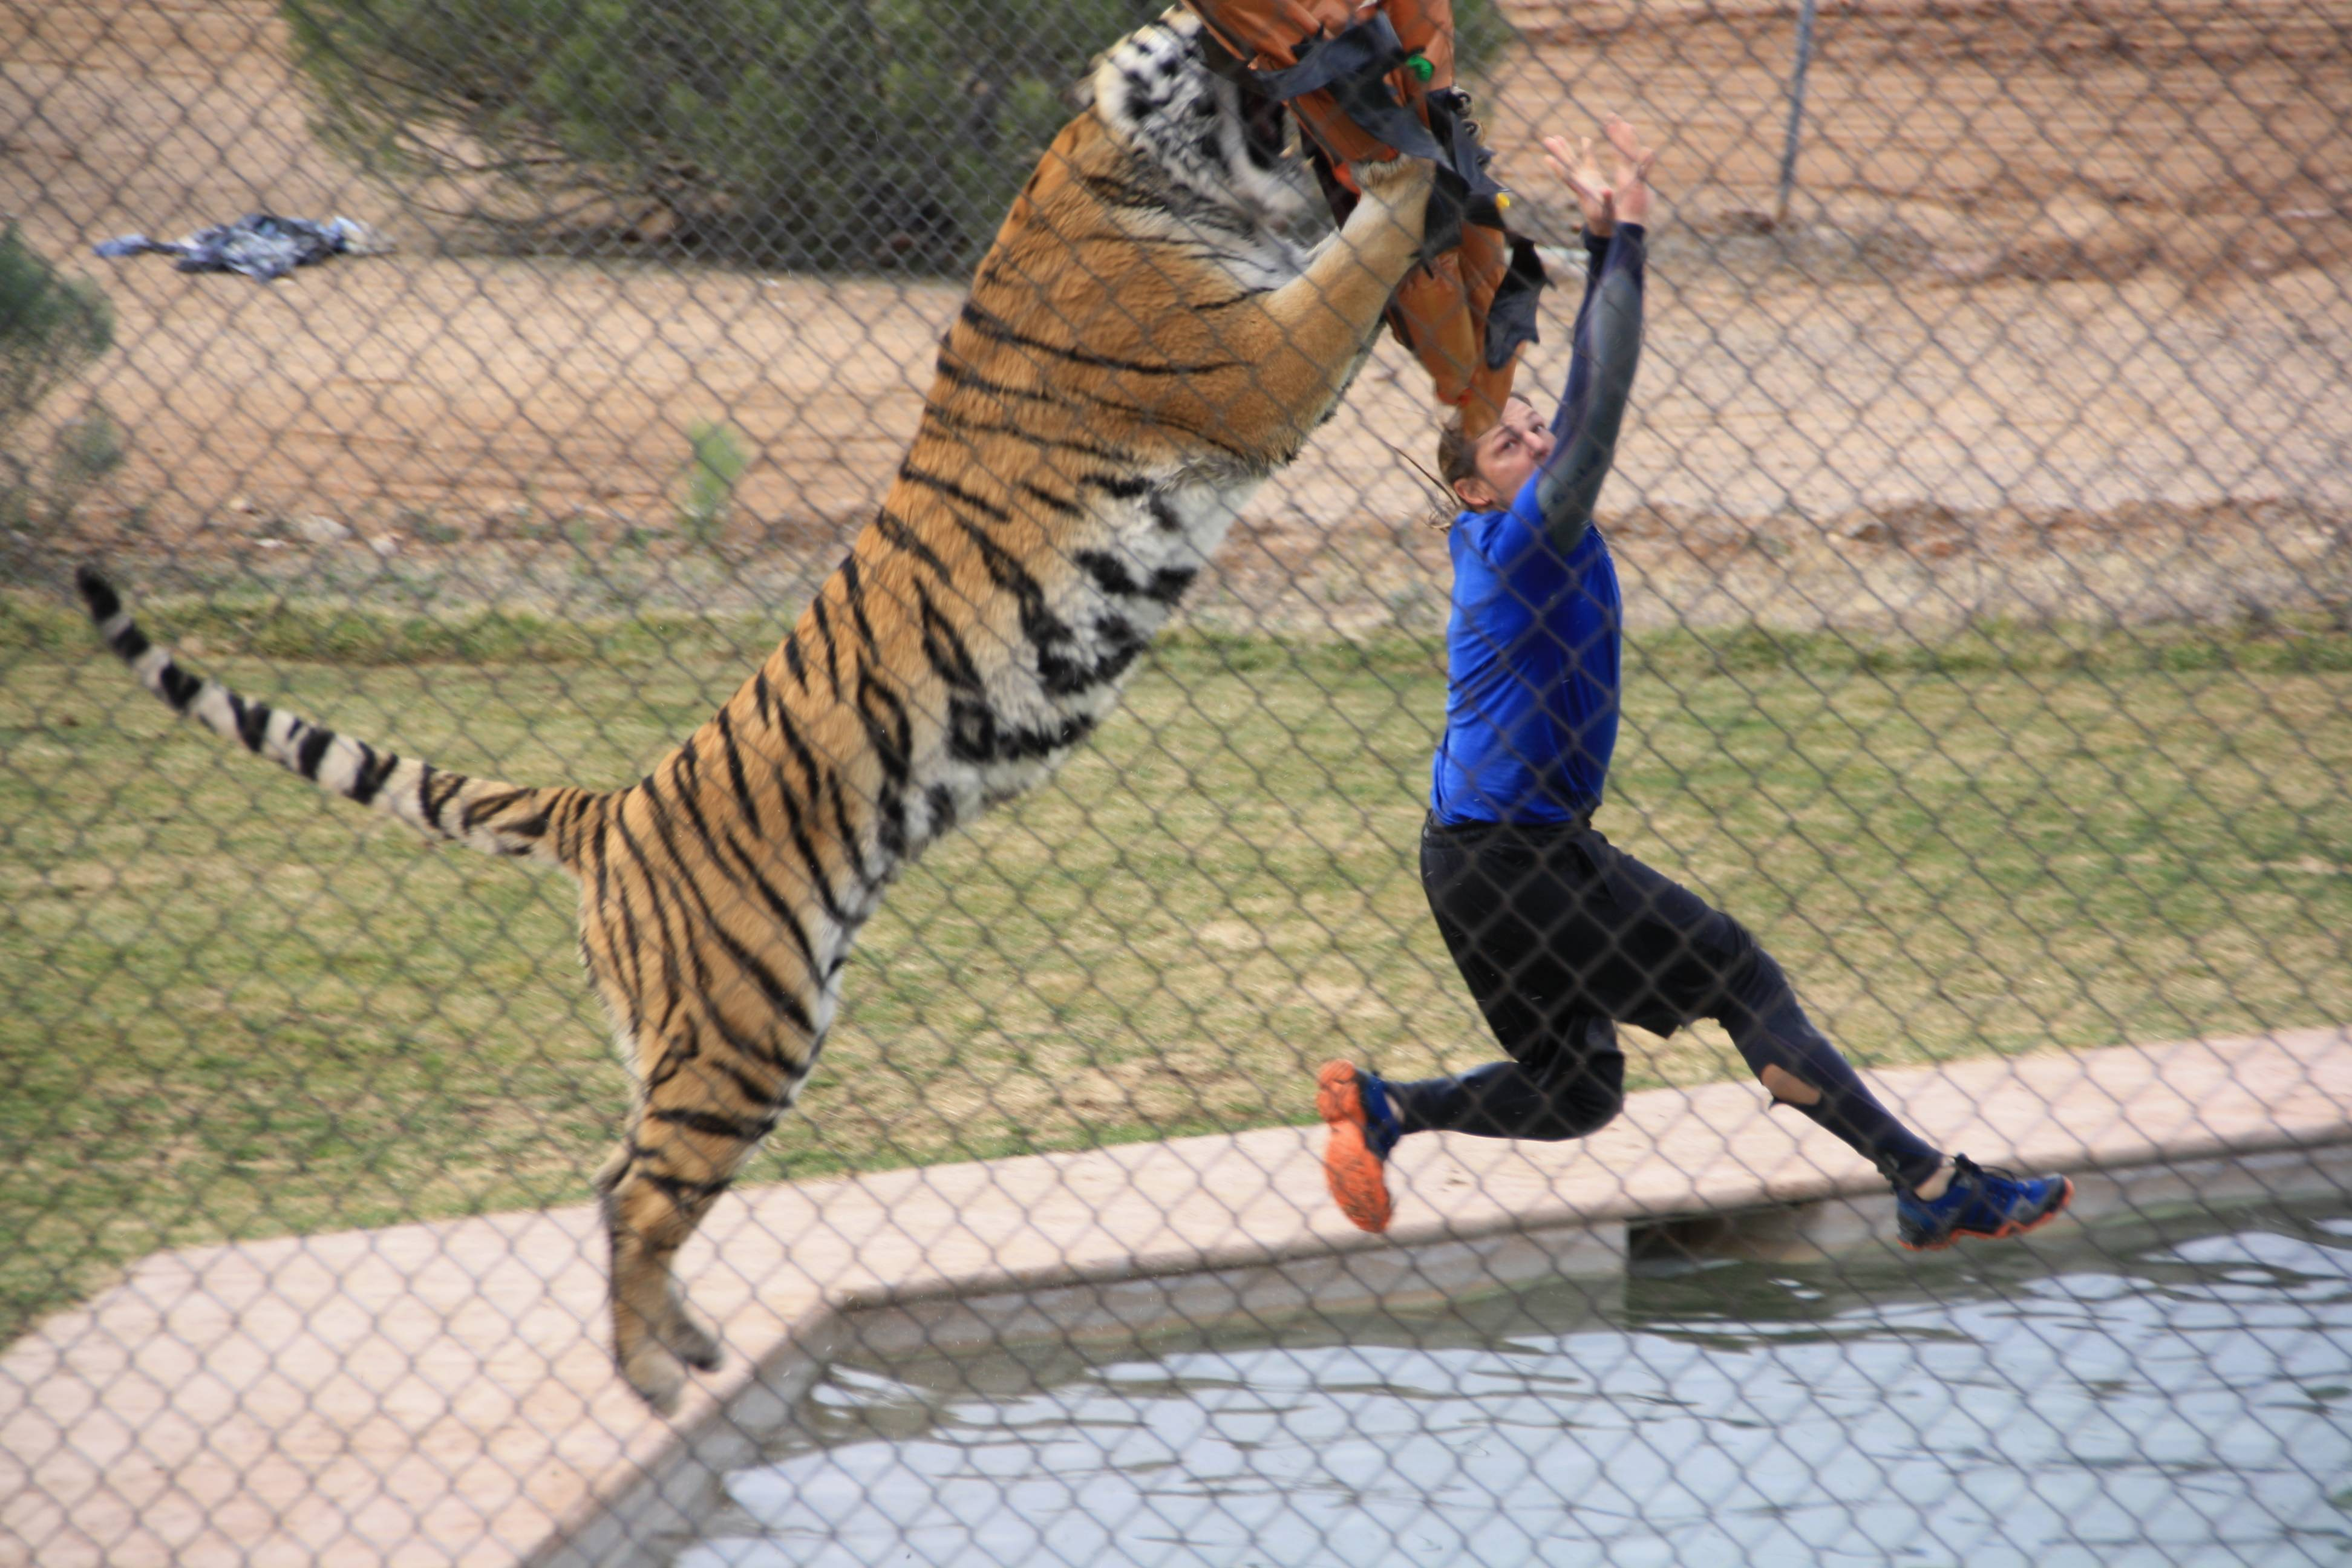 Tiger show at Out of Africa park in Camp Verde AZ